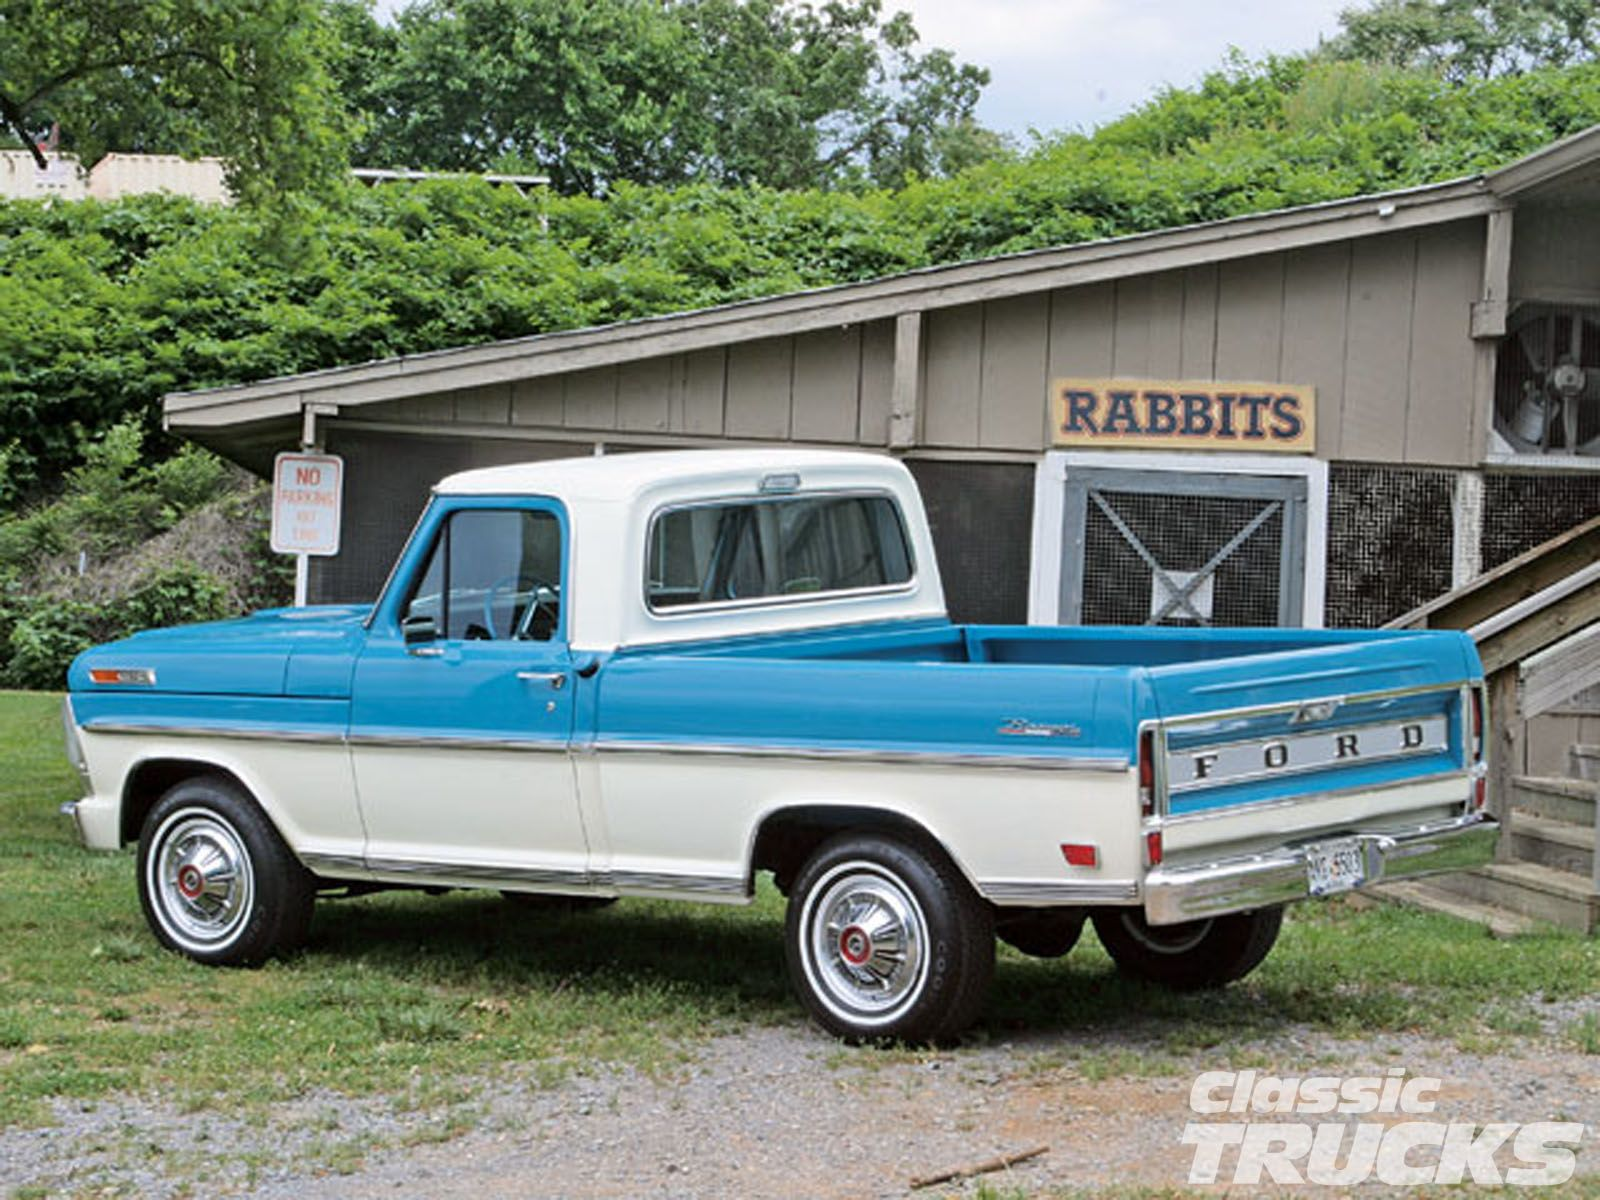 Classic ford trucks 0611clt 1969 ford f100 pickup truck rabbits door way photo 8